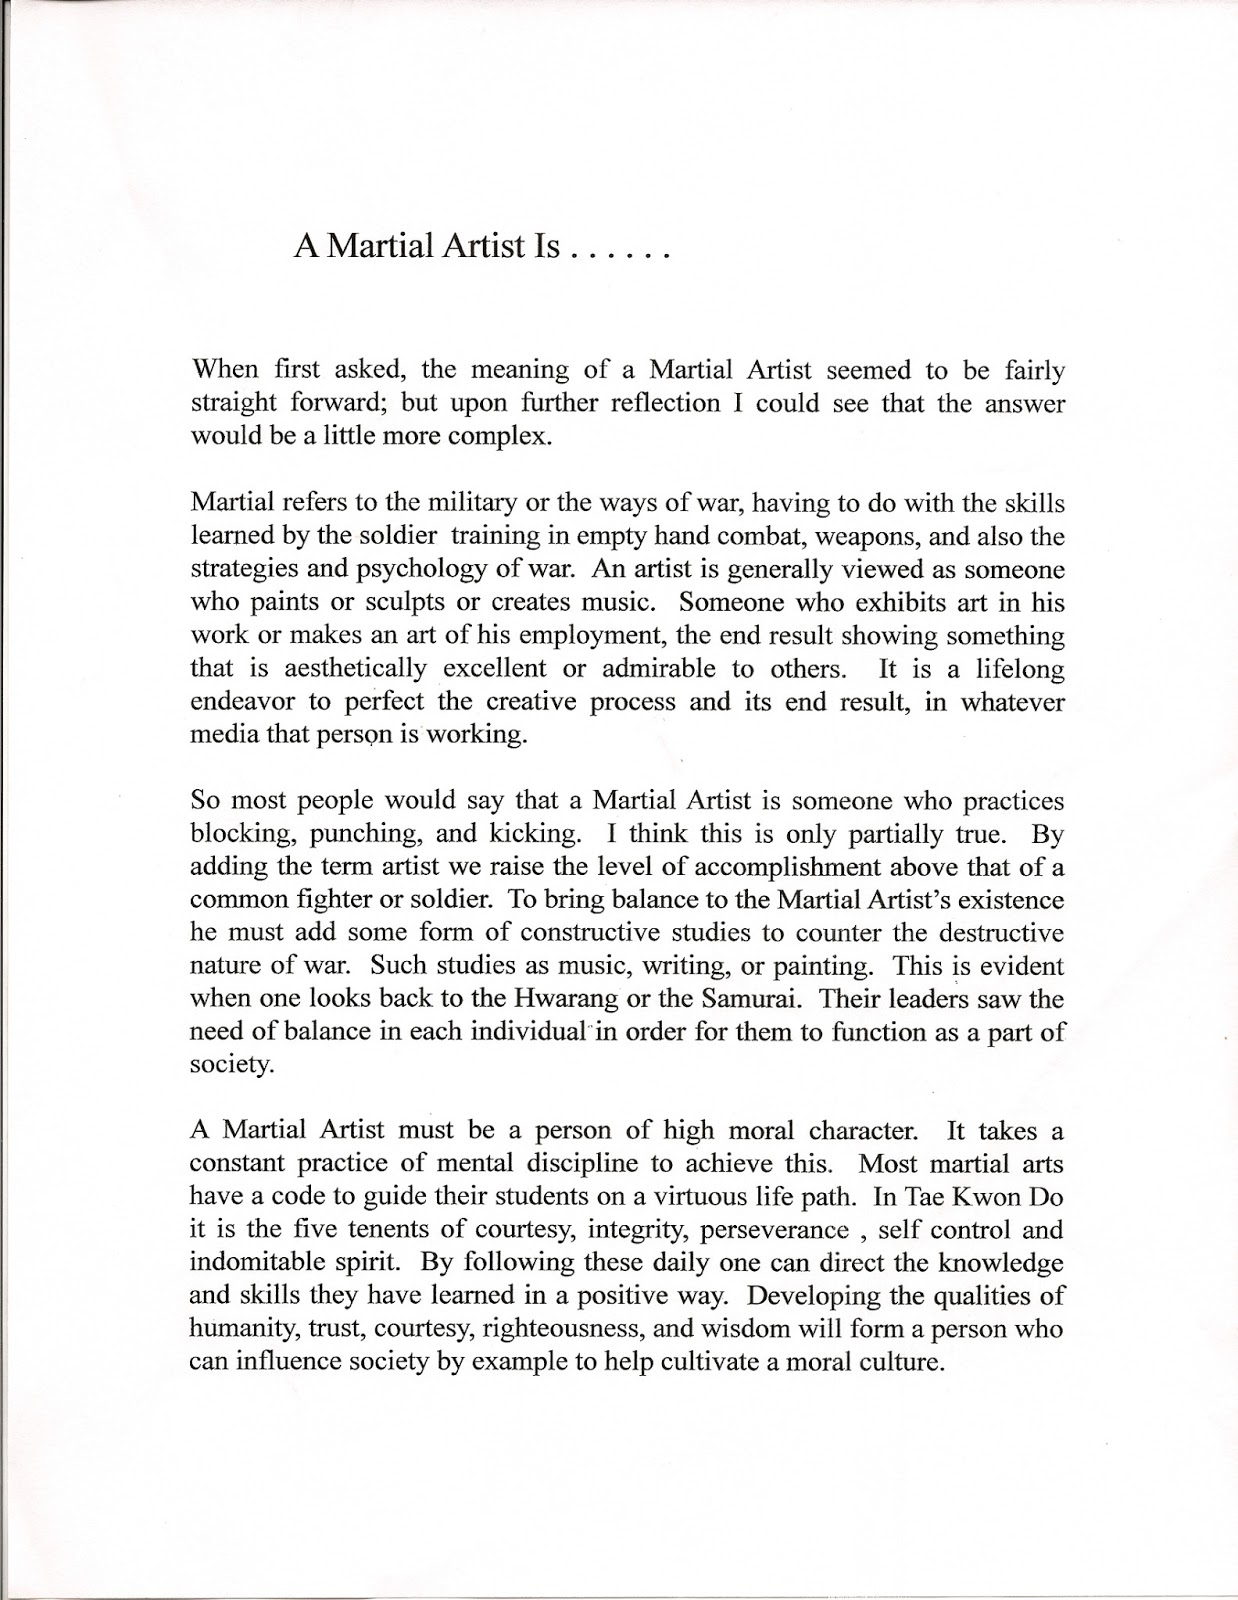 hugh gallagher essay hugh gallagher college essay gxart hugh essay share gxart orgessay share